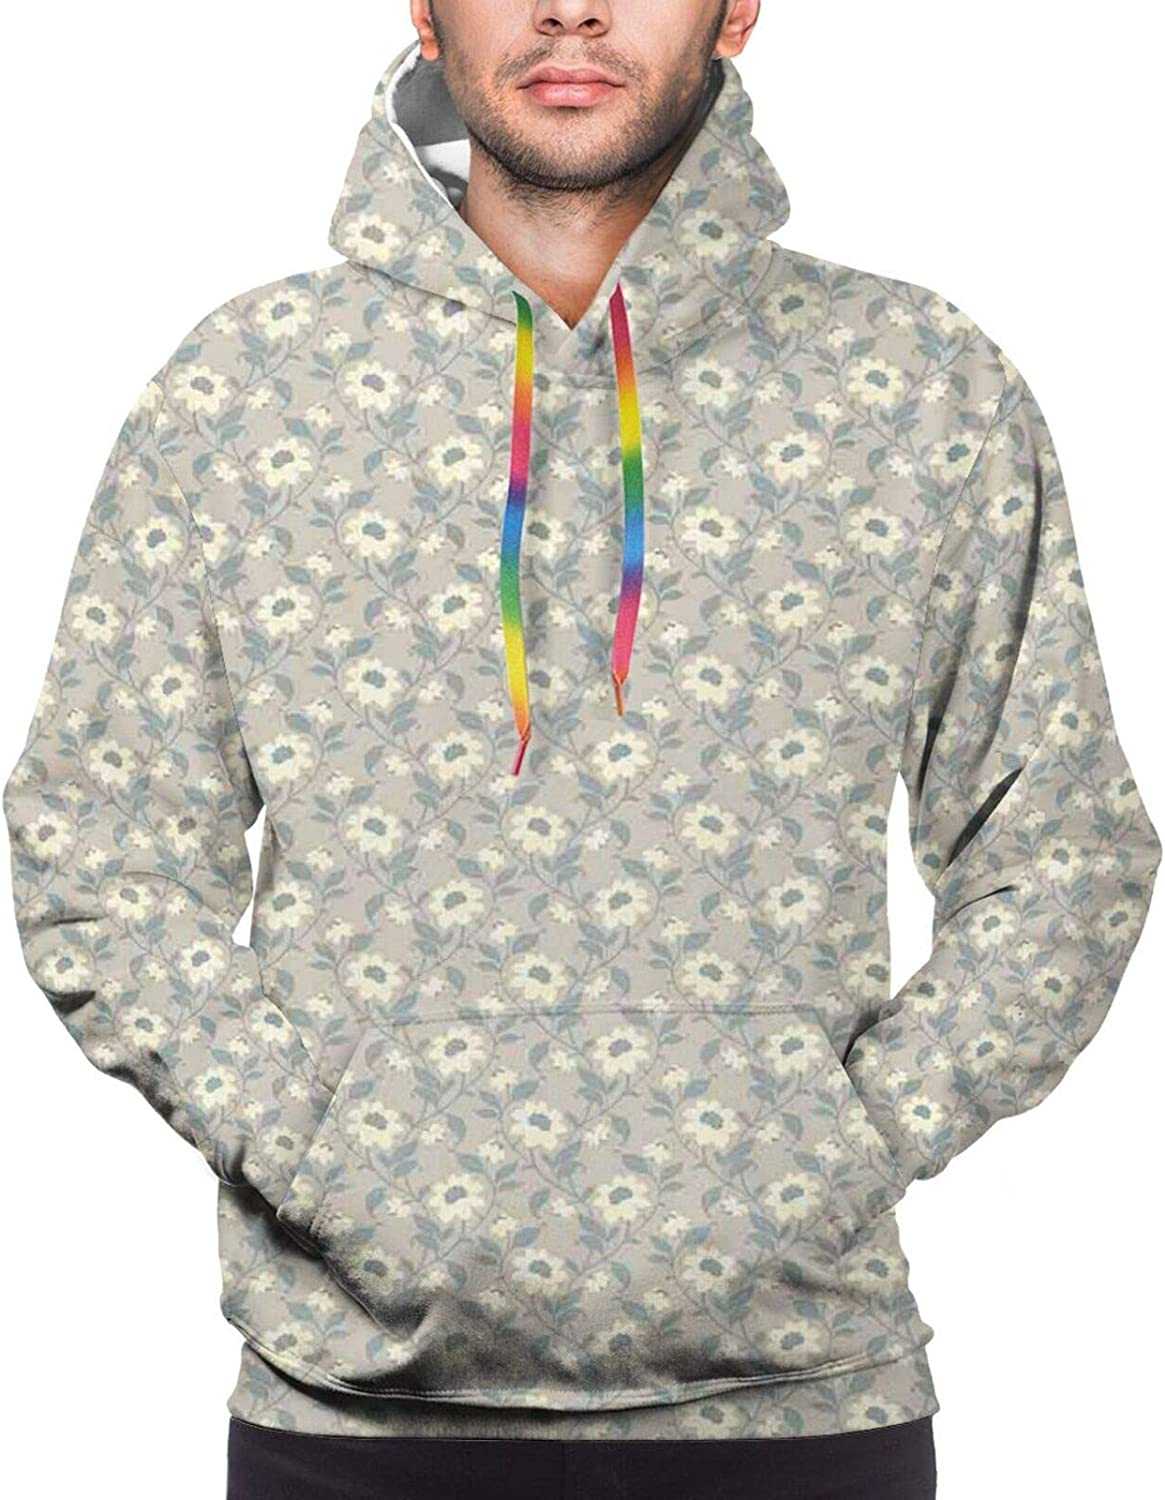 Men's Hoodies Sweatshirts,Blooming Nature Themed Illustration with Foliage and Curved Lines